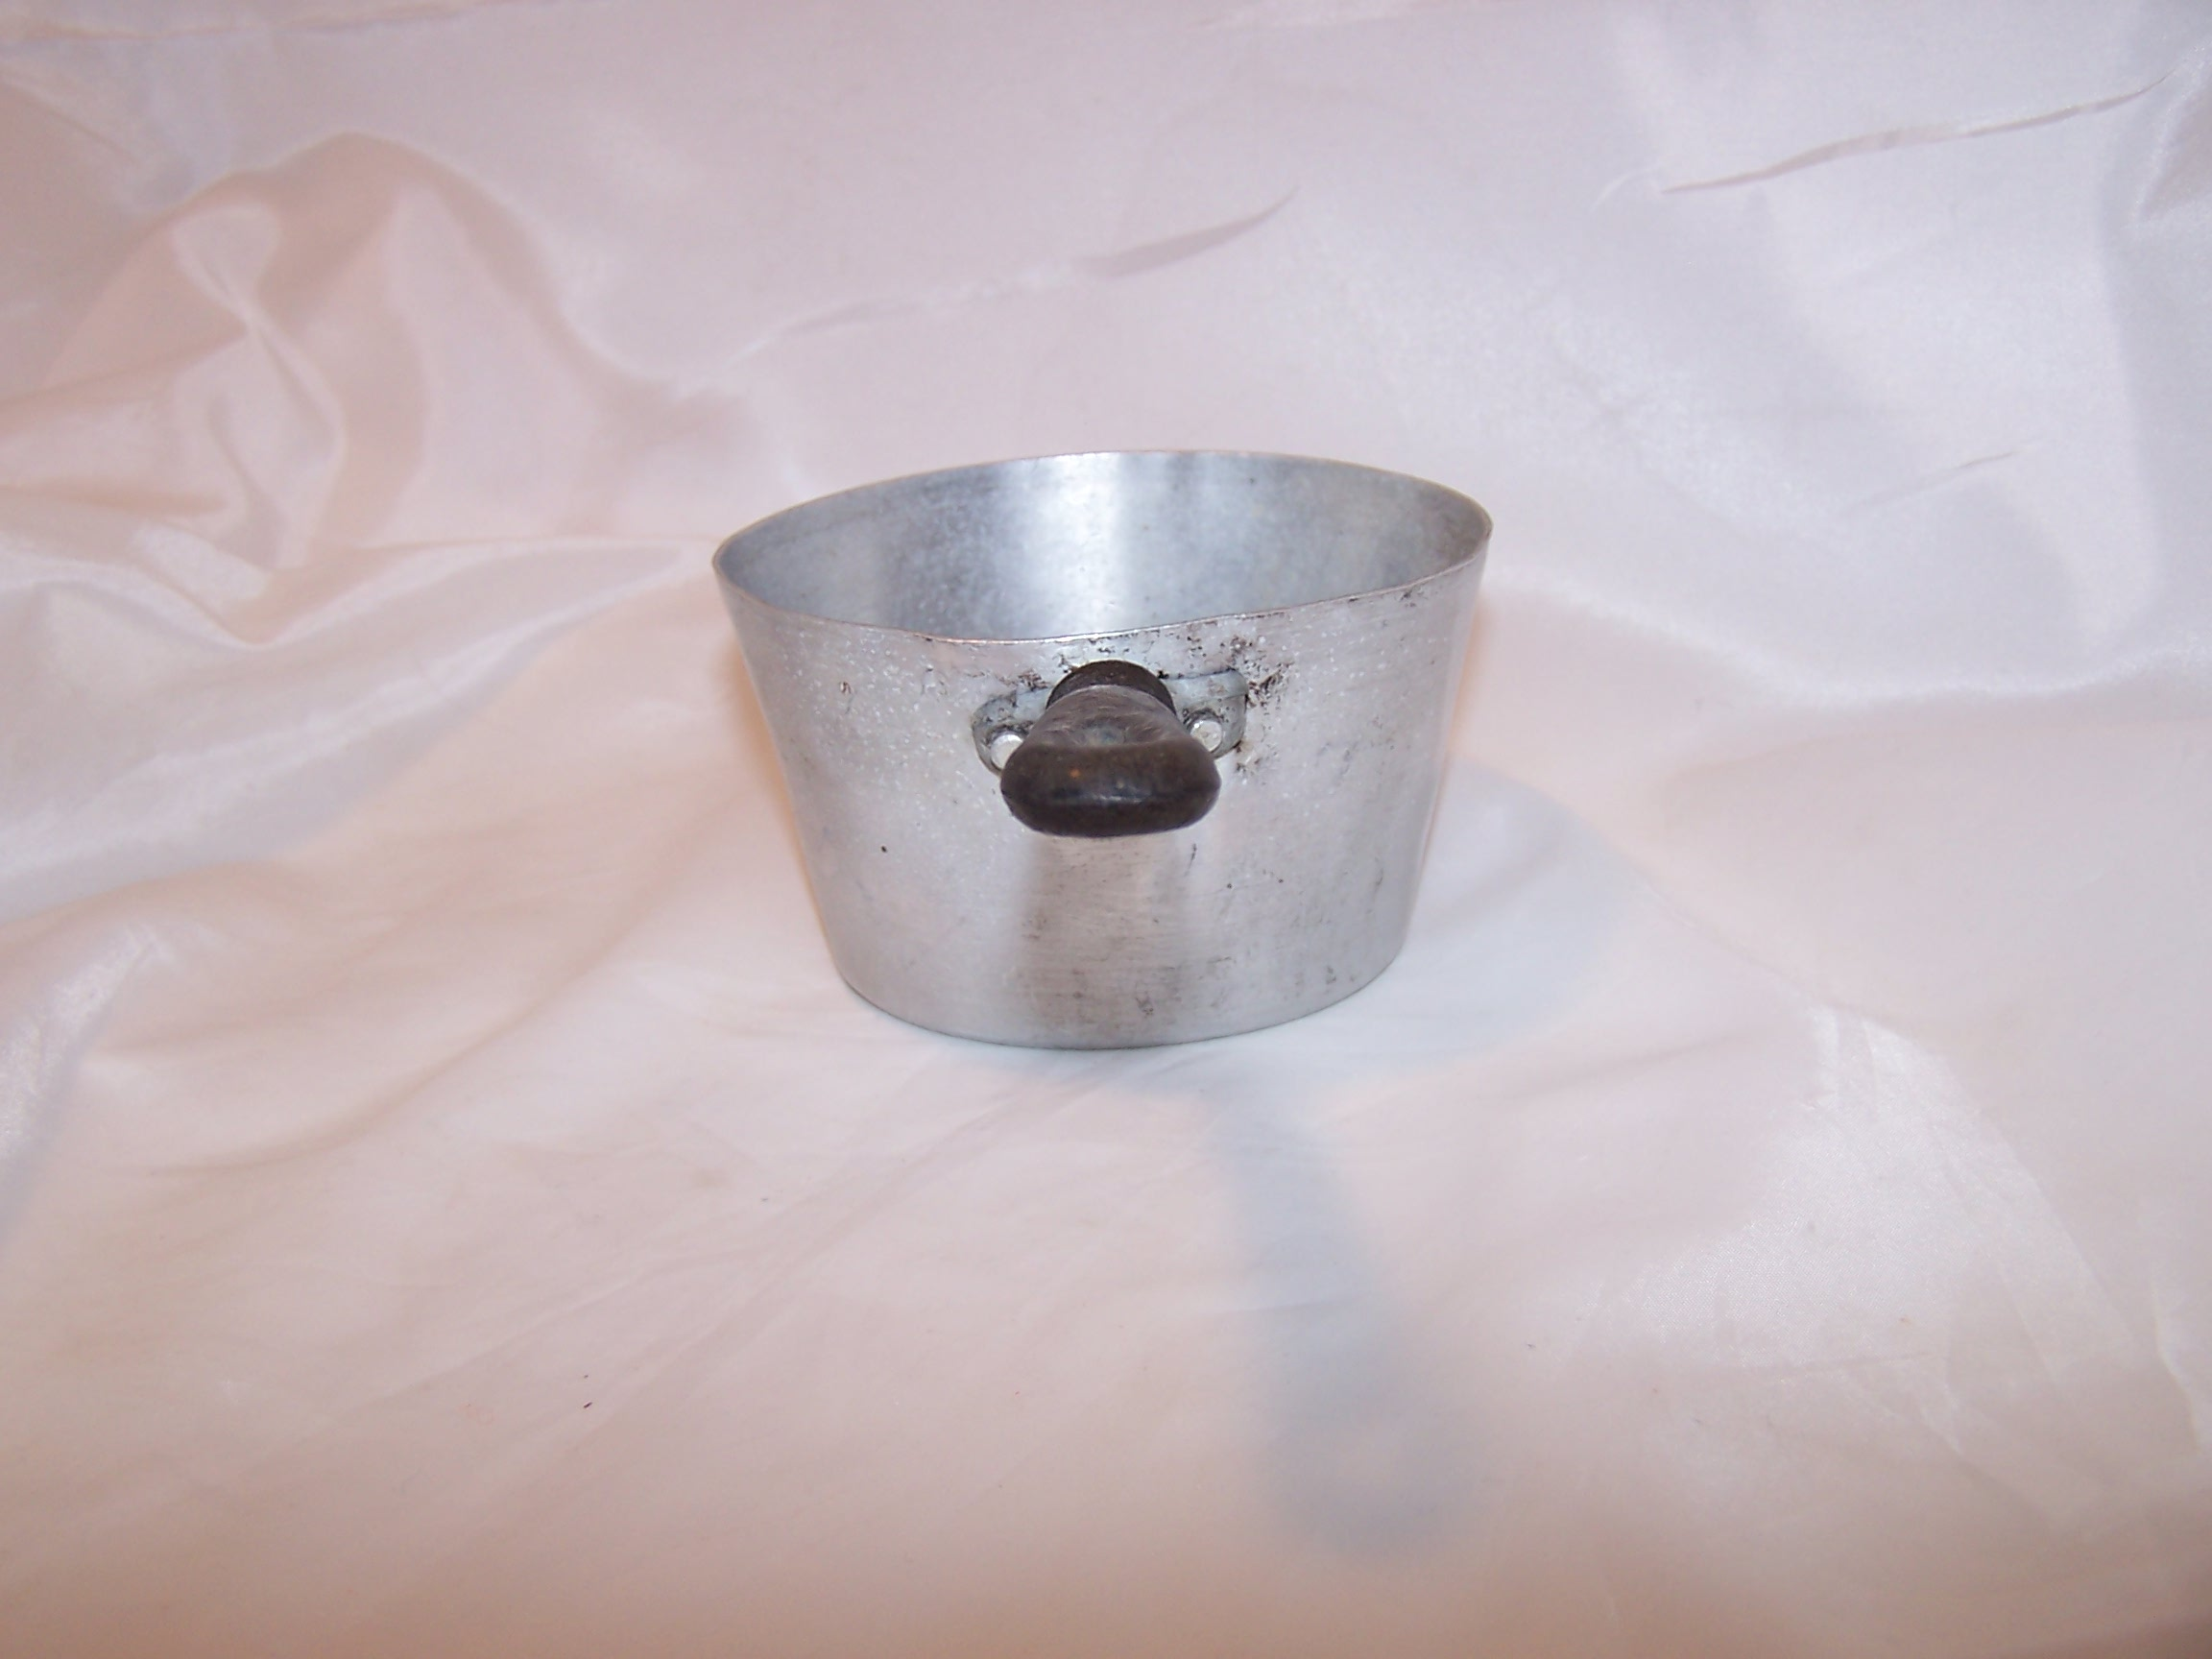 Image 1 of Toy Cook Pot, Aluminum, Vintage Childs Toy